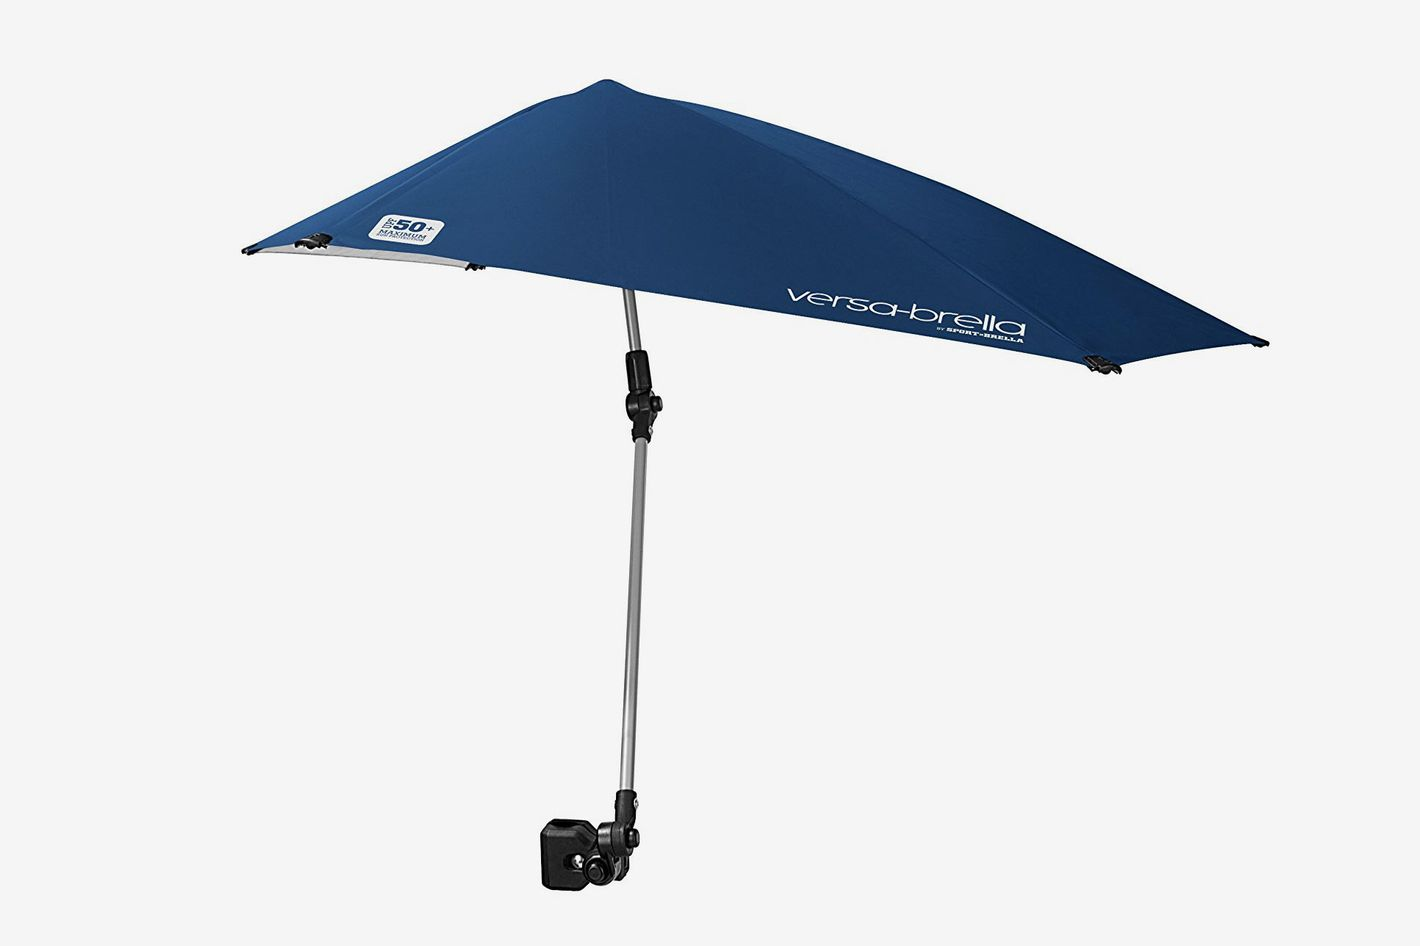 Sport Brella Versa All Position Umbrella With Universal Clamp At